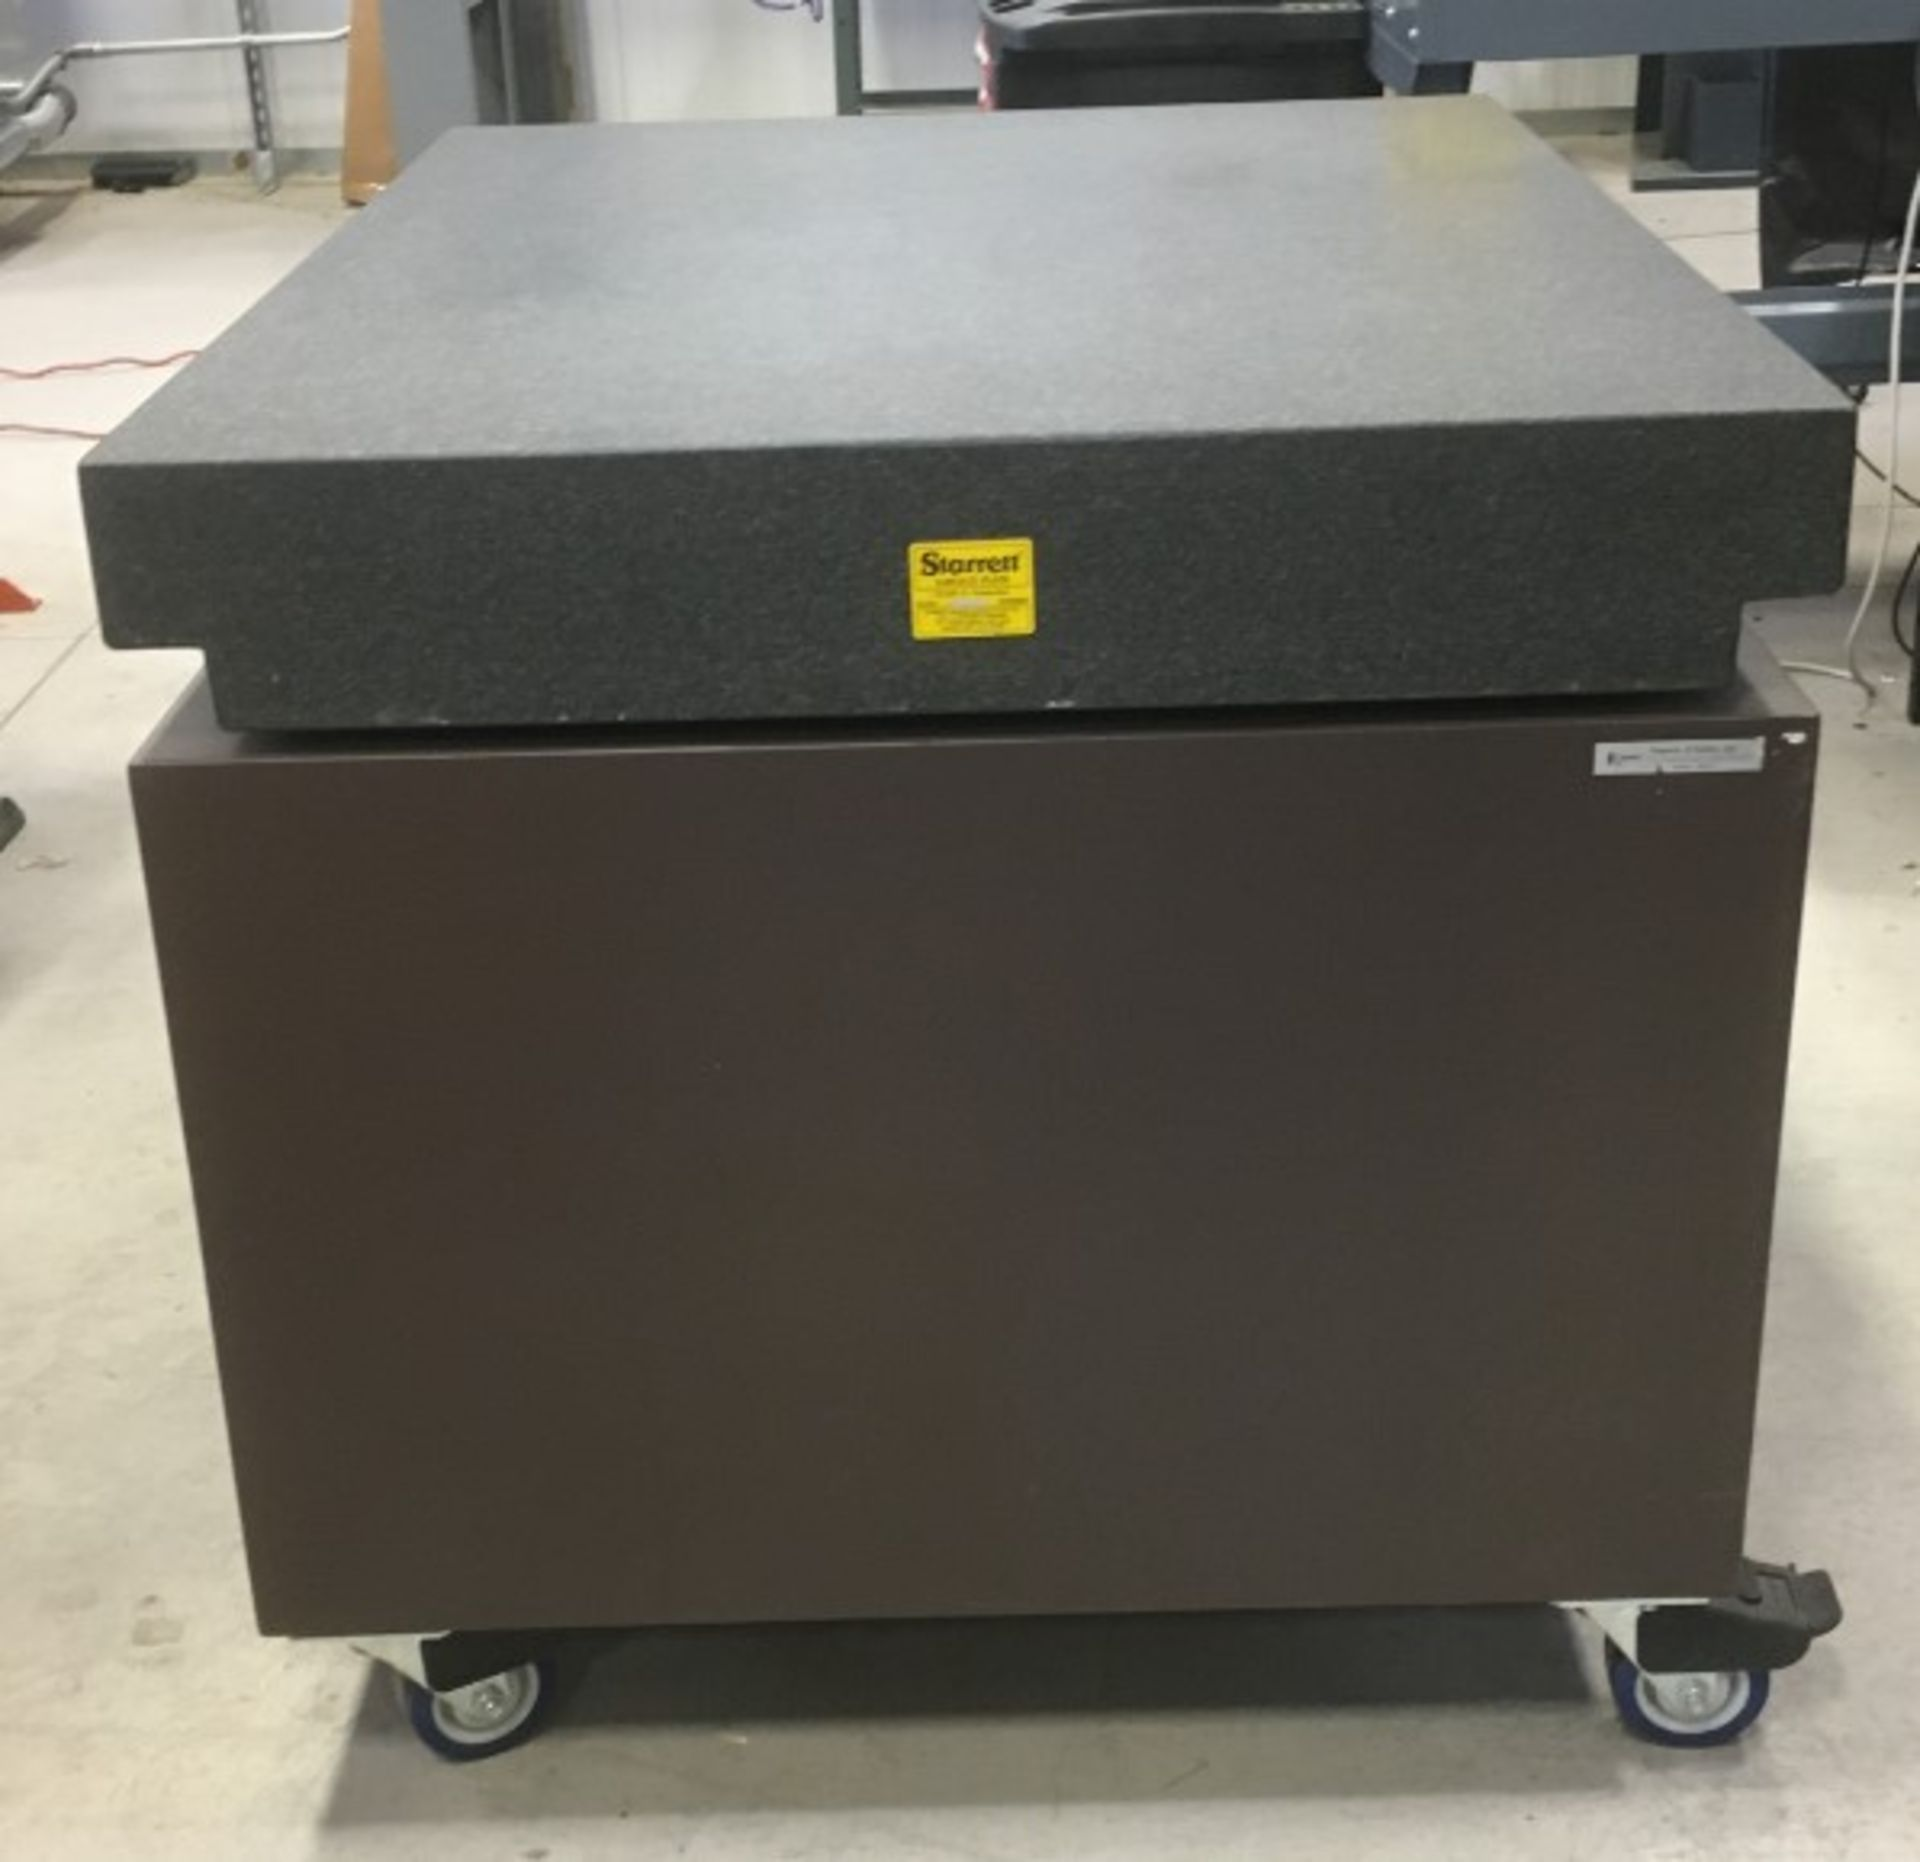 STARRETT 48ÓX36ÓX35ÓH GRANITE SURFACE PLATE WITH ROLLING STAND [RIGGING FEES FOR LOT# 10A - $50 - Image 3 of 3